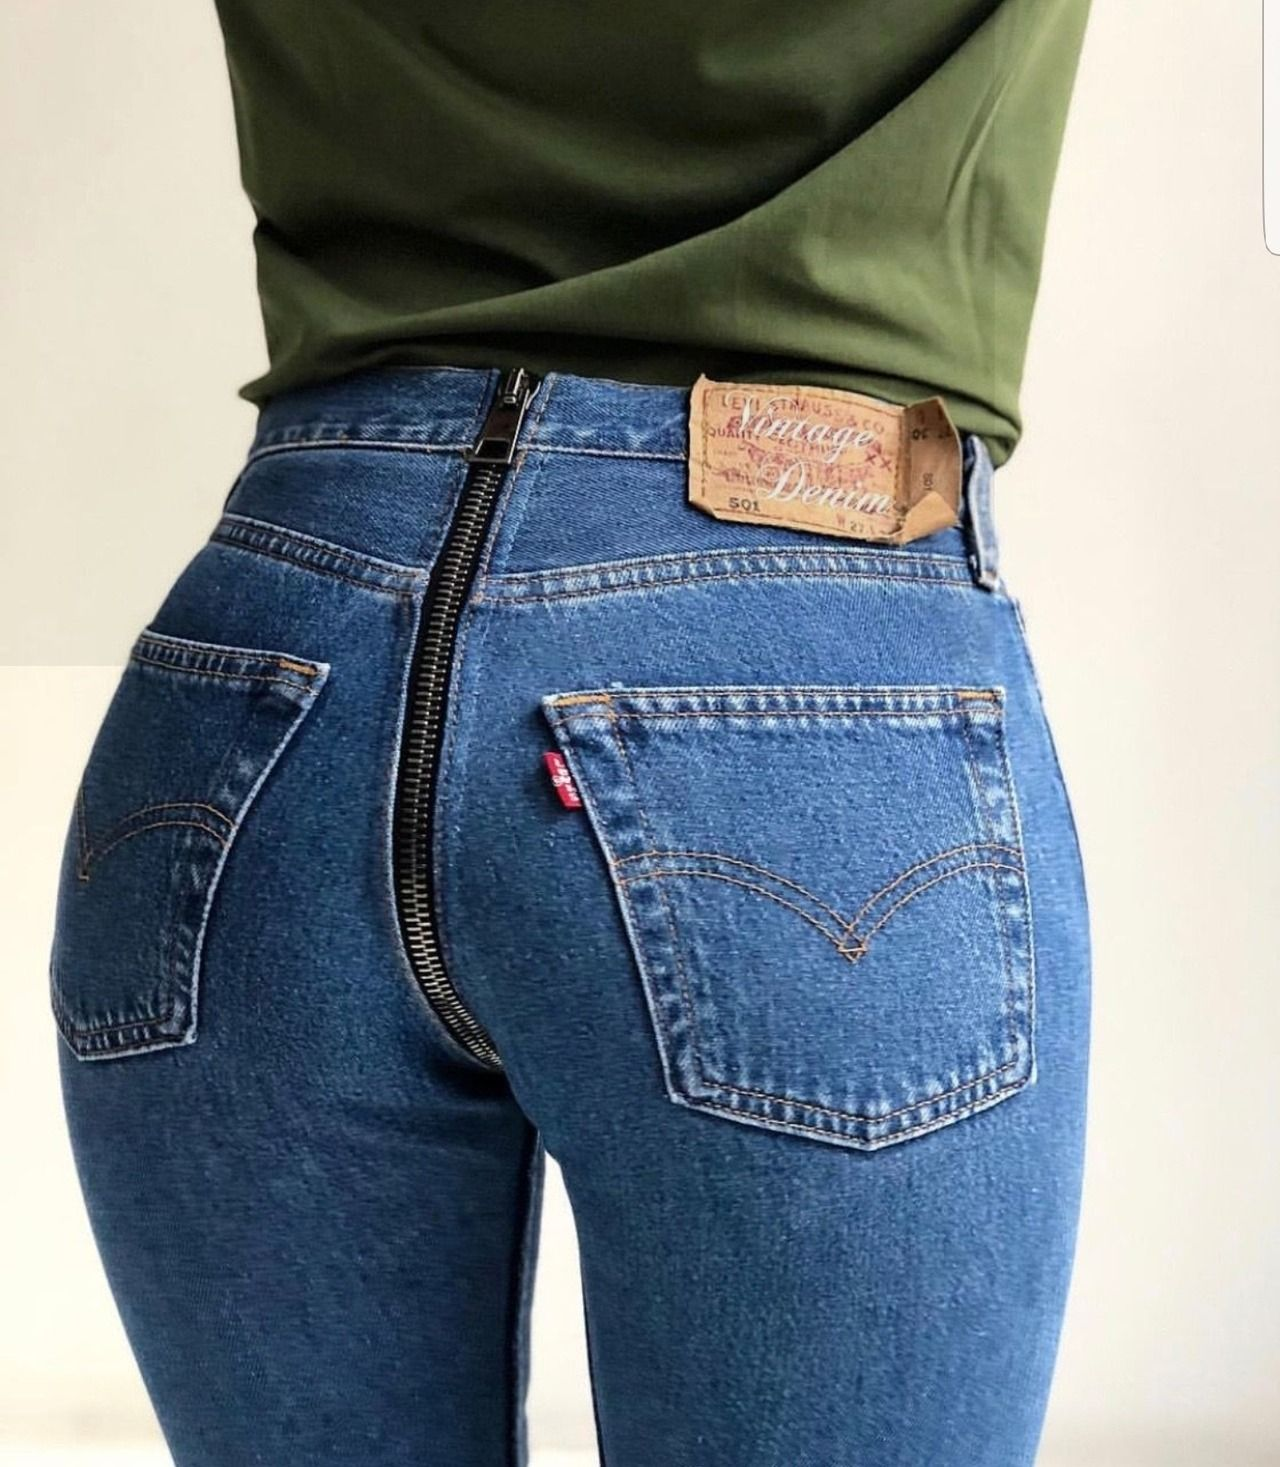 c496ecae01ce4a Pin by Roger on Levis 501 in 2019 | Jeans, Girls jeans, Sexy jeans